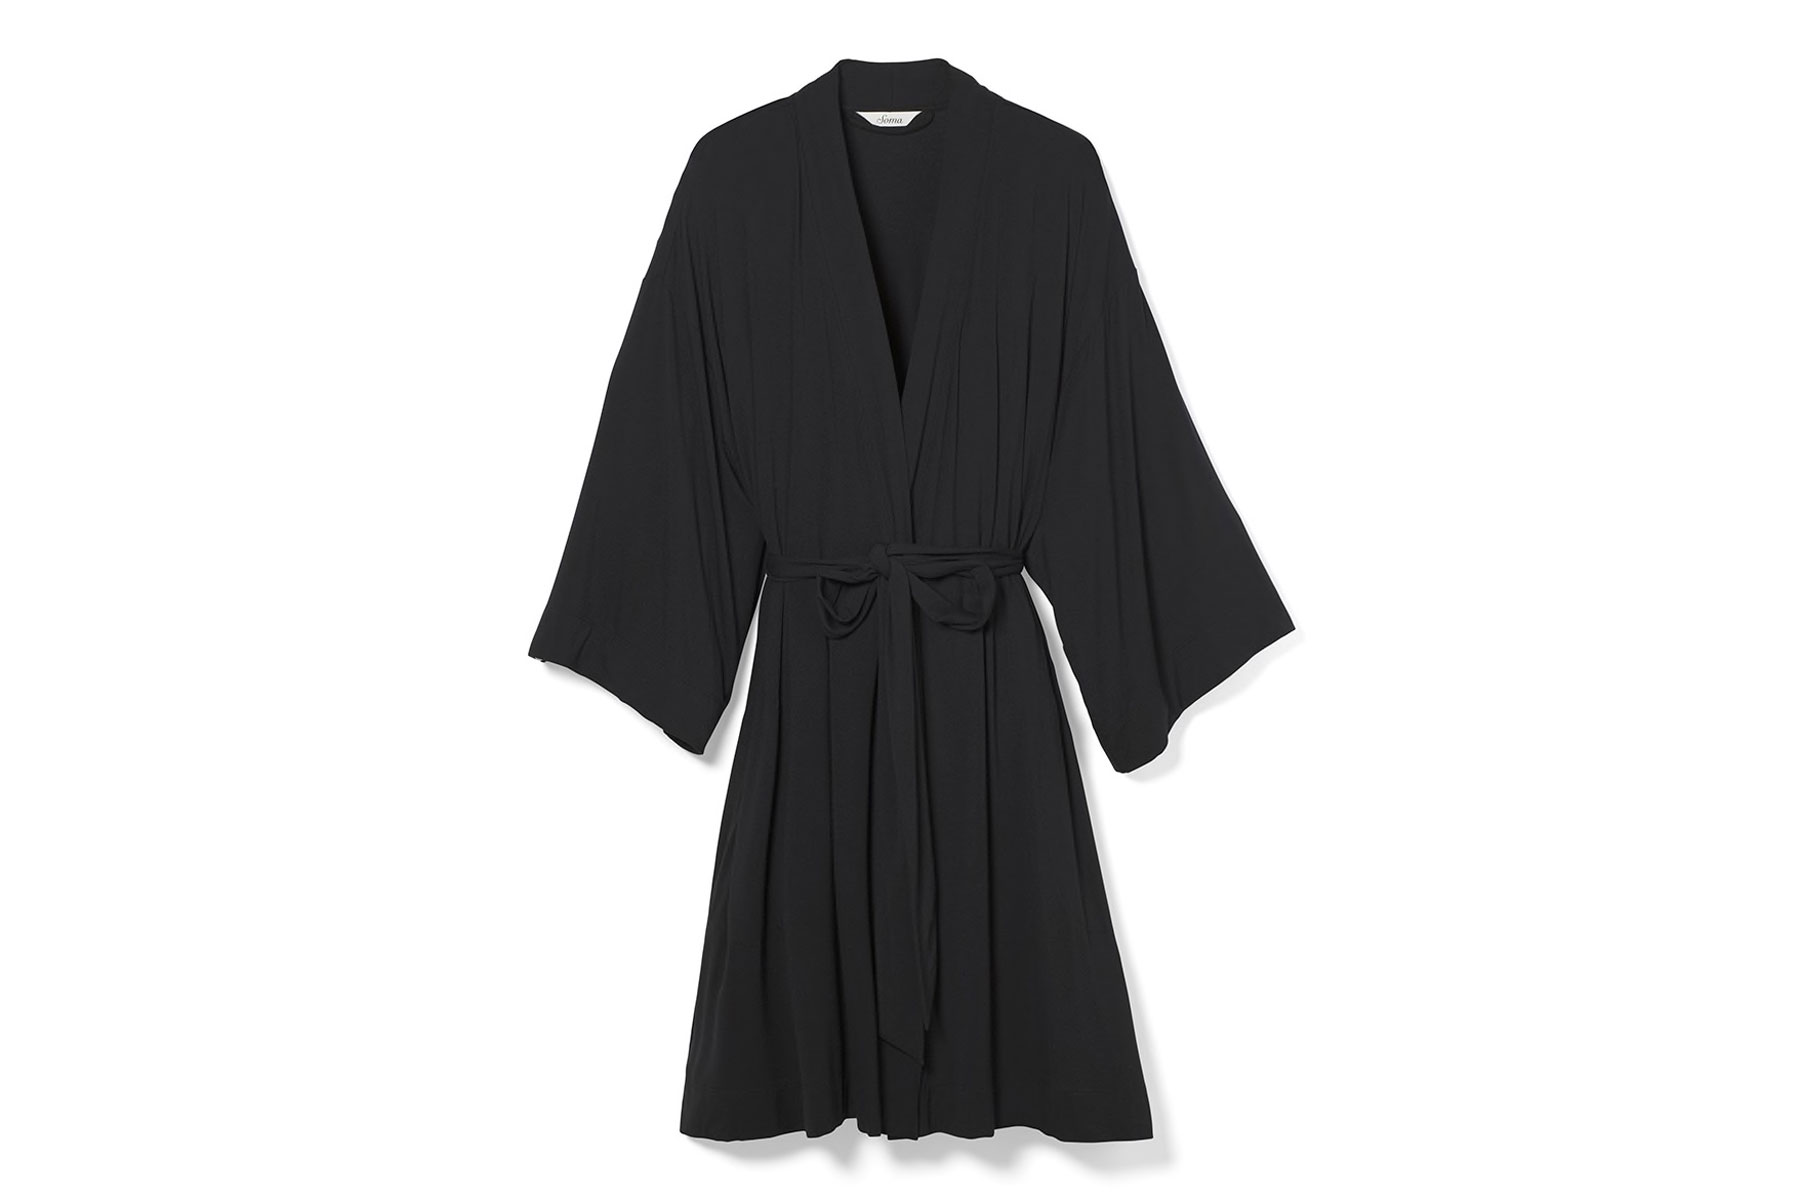 Women's black bathrobe